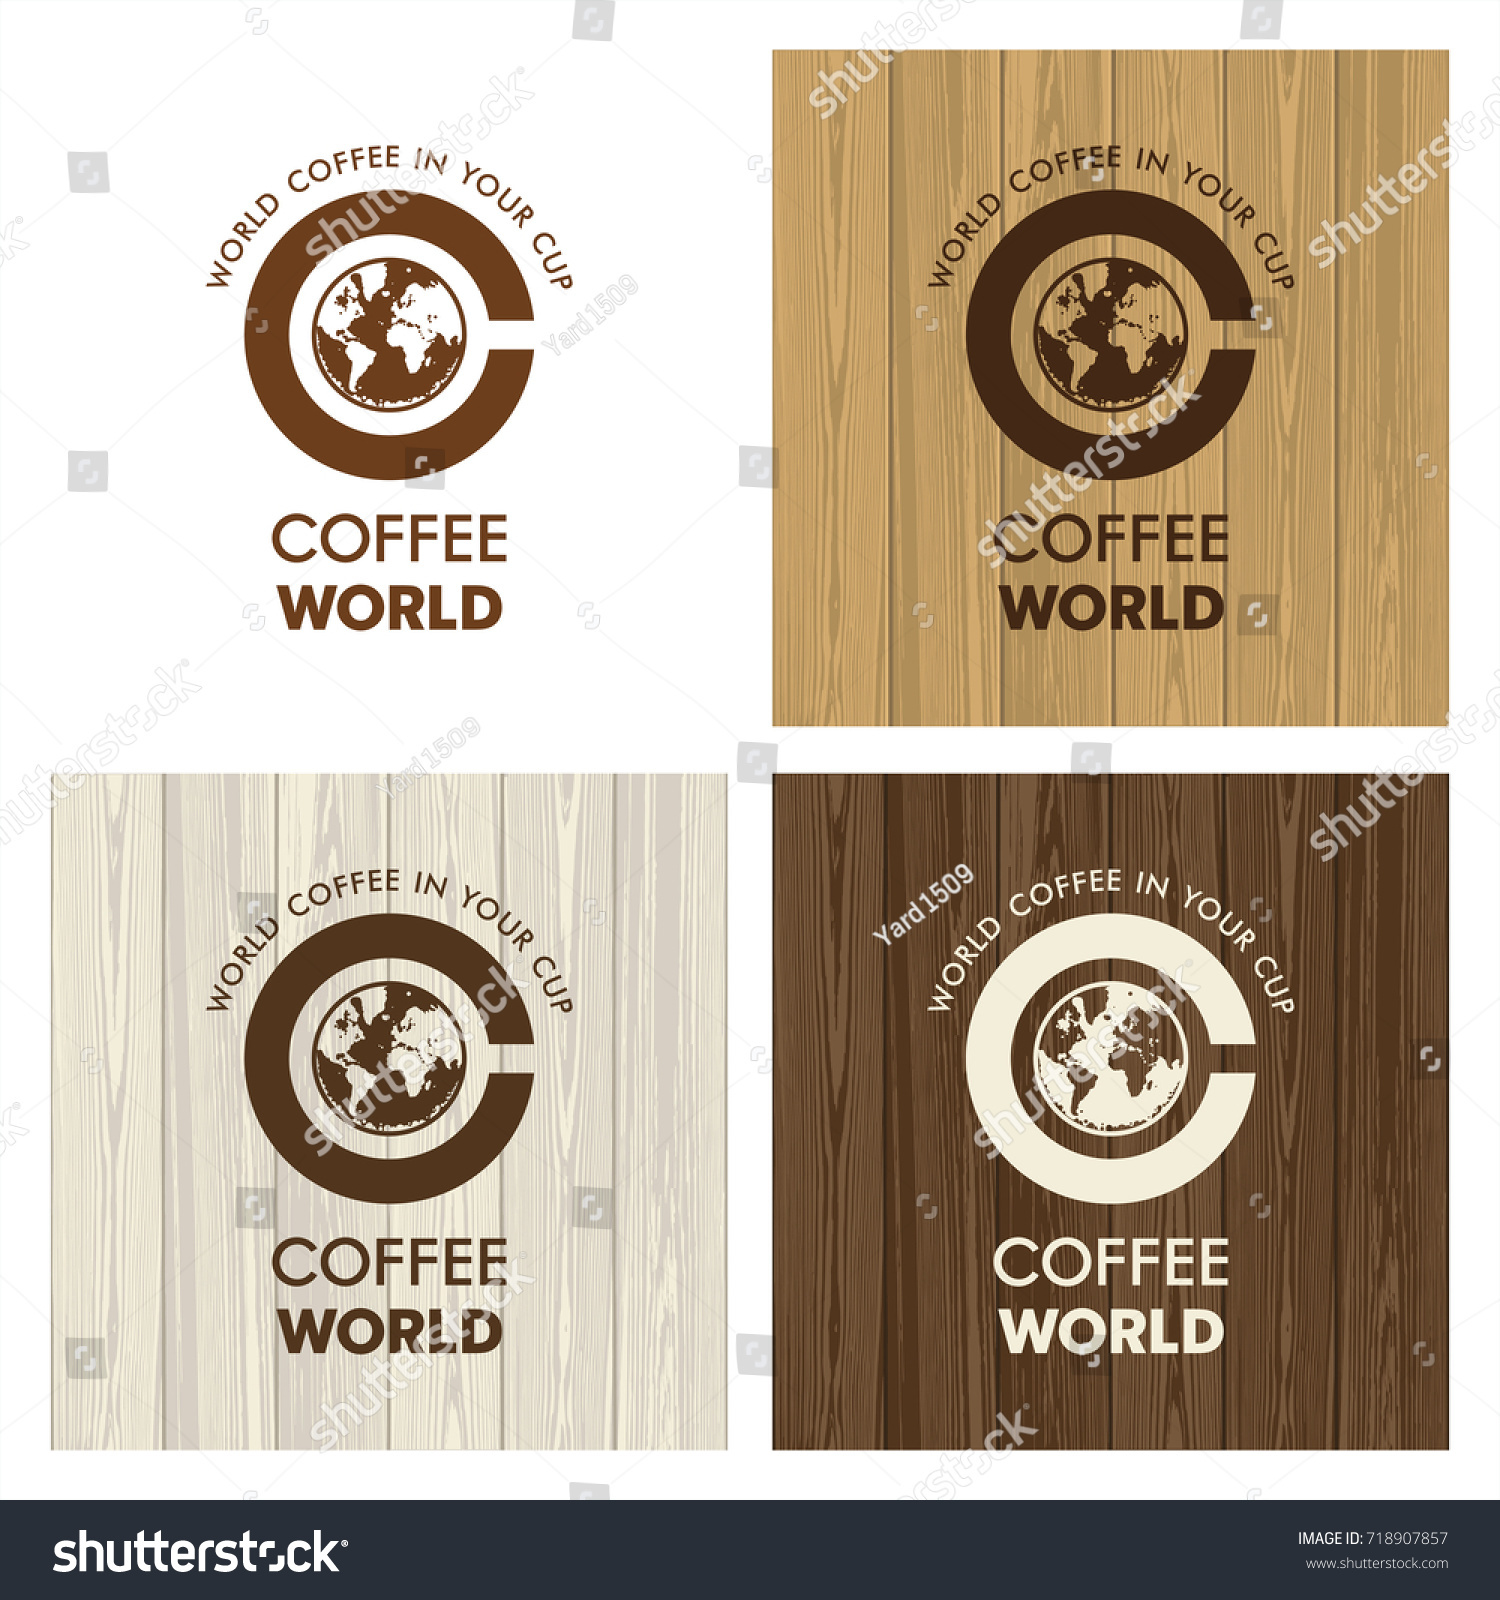 Logo coffee world coffee cup world stock photo photo vector logo coffee world coffee cup world map coffee foam corporate identity on gumiabroncs Image collections